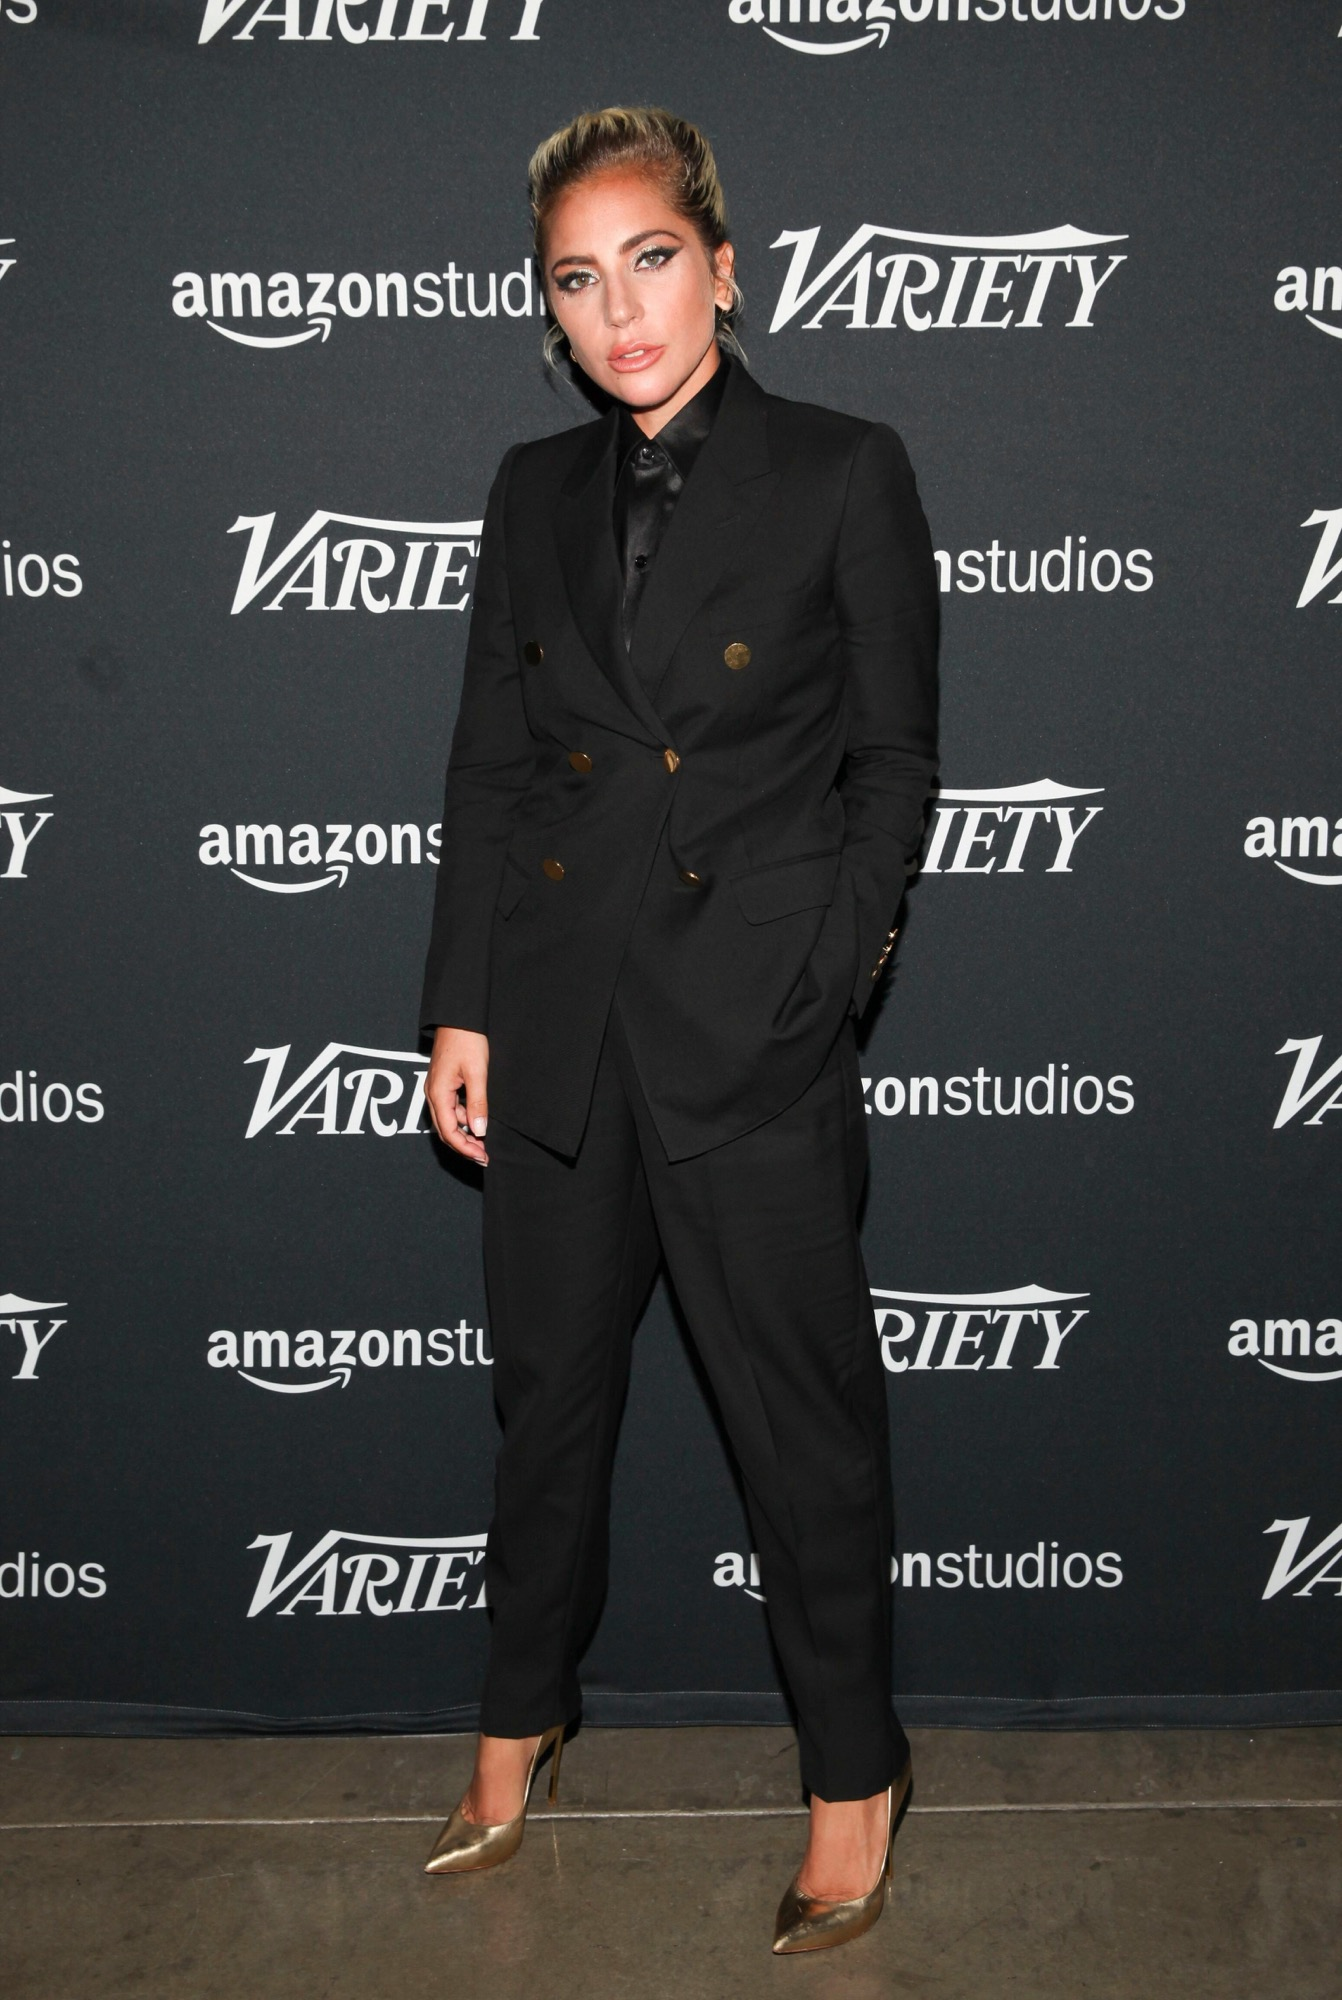 Lady Gaga in black suit designed by hedi slimane for celine